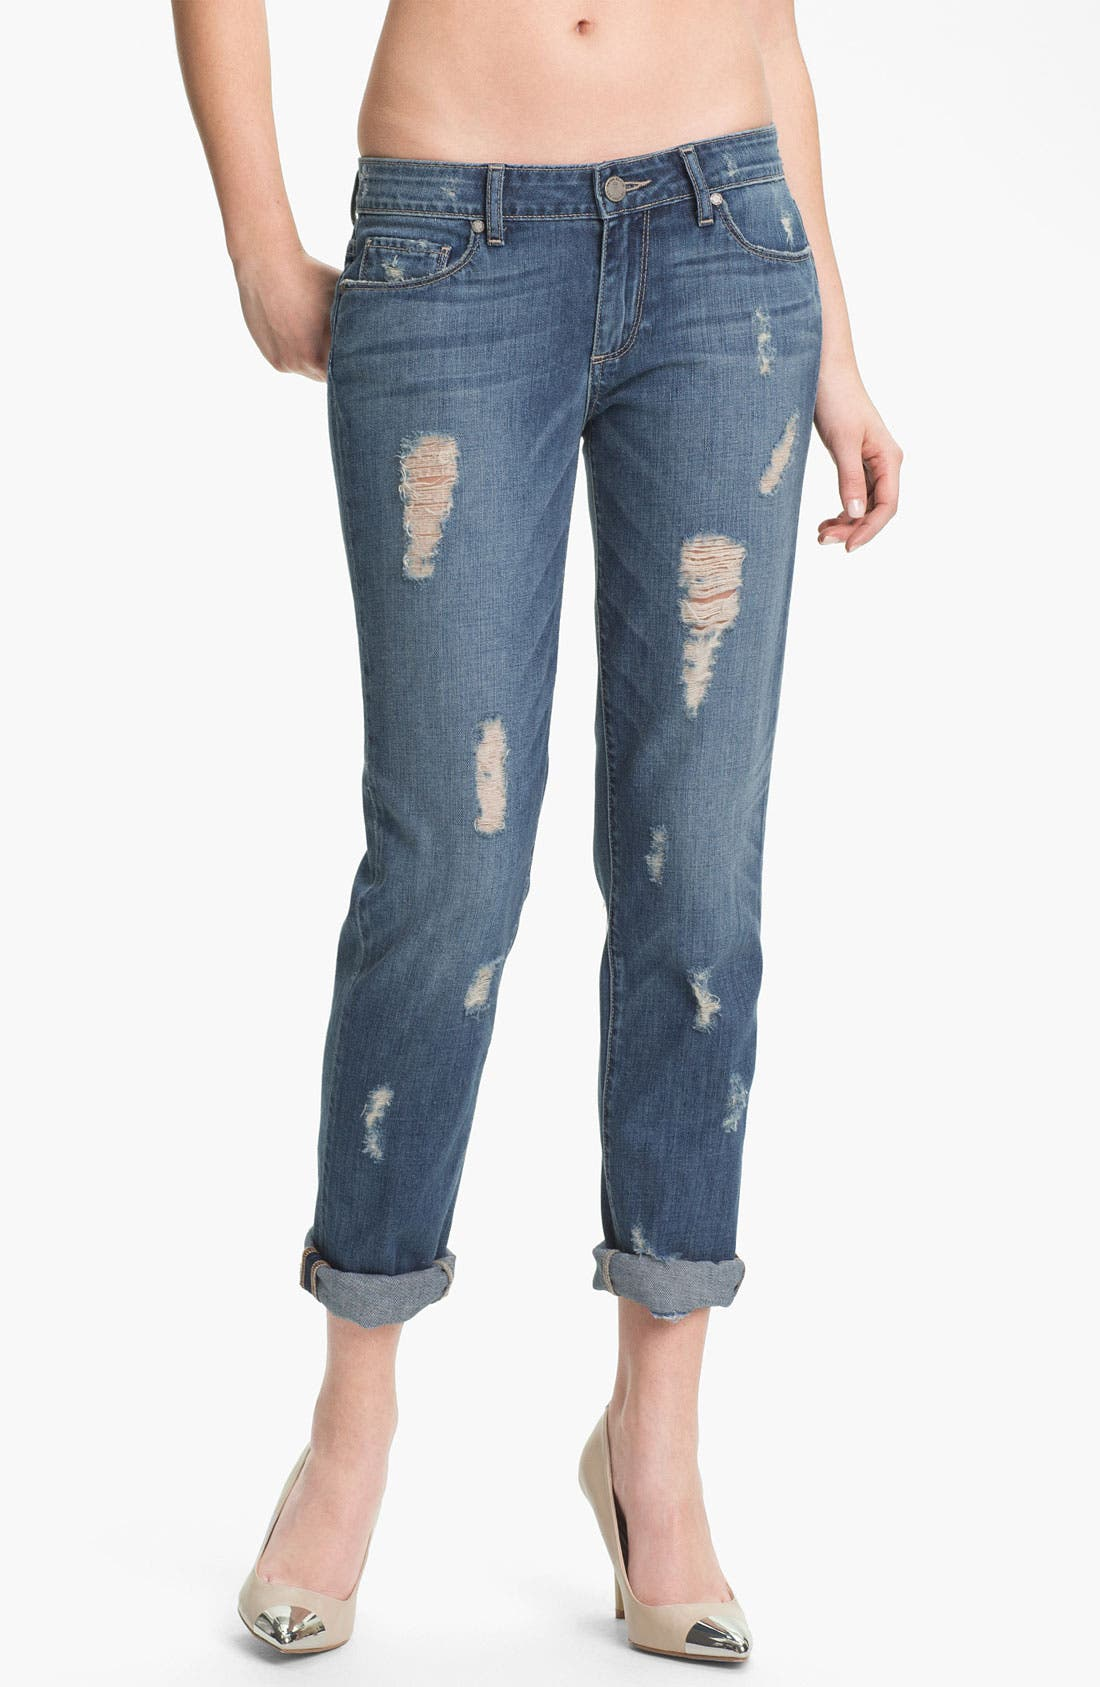 Denim 'Jimmy Jimmy' Distressed Skinny Jeans,                         Main,                         color,